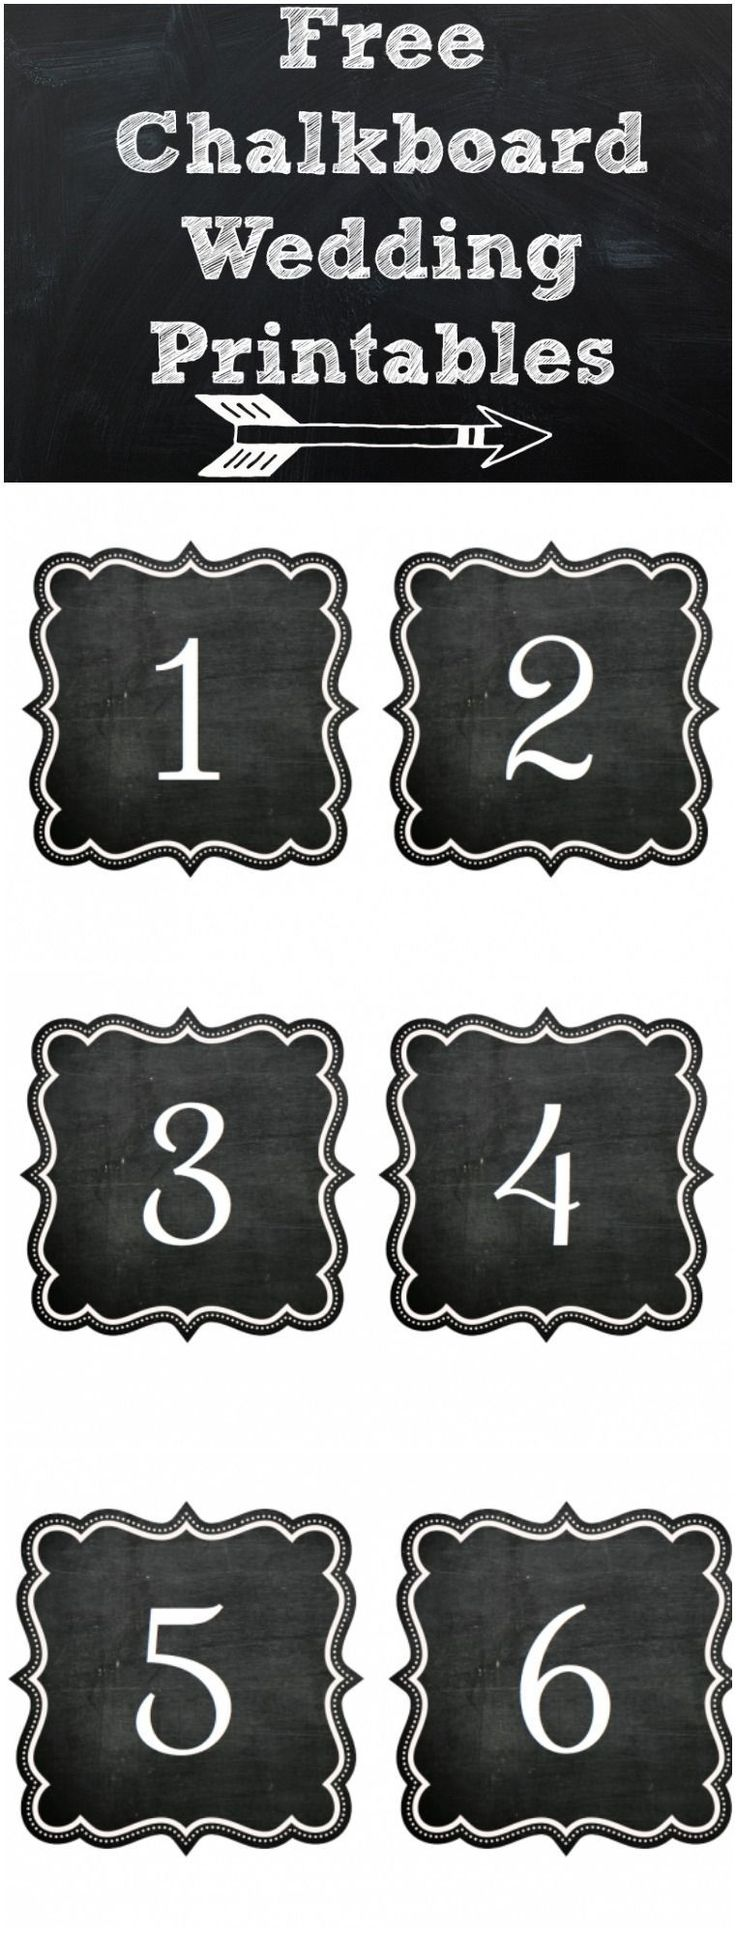 We are kicking off a brand new feature here on Rustic Wedding Chic which is our new Free Custom Rustic Wedding Printables. We will soon be offering a wide variety of free printables that have been created for Rustic Wedding Chic by some of the finest stationary and wedding artist around. To kick things off we have these amazing chalkboard table number printables which were designed by the very talented Kristin from Page Simple Studio. Be sure to check out Paige Simple Studio's website and…